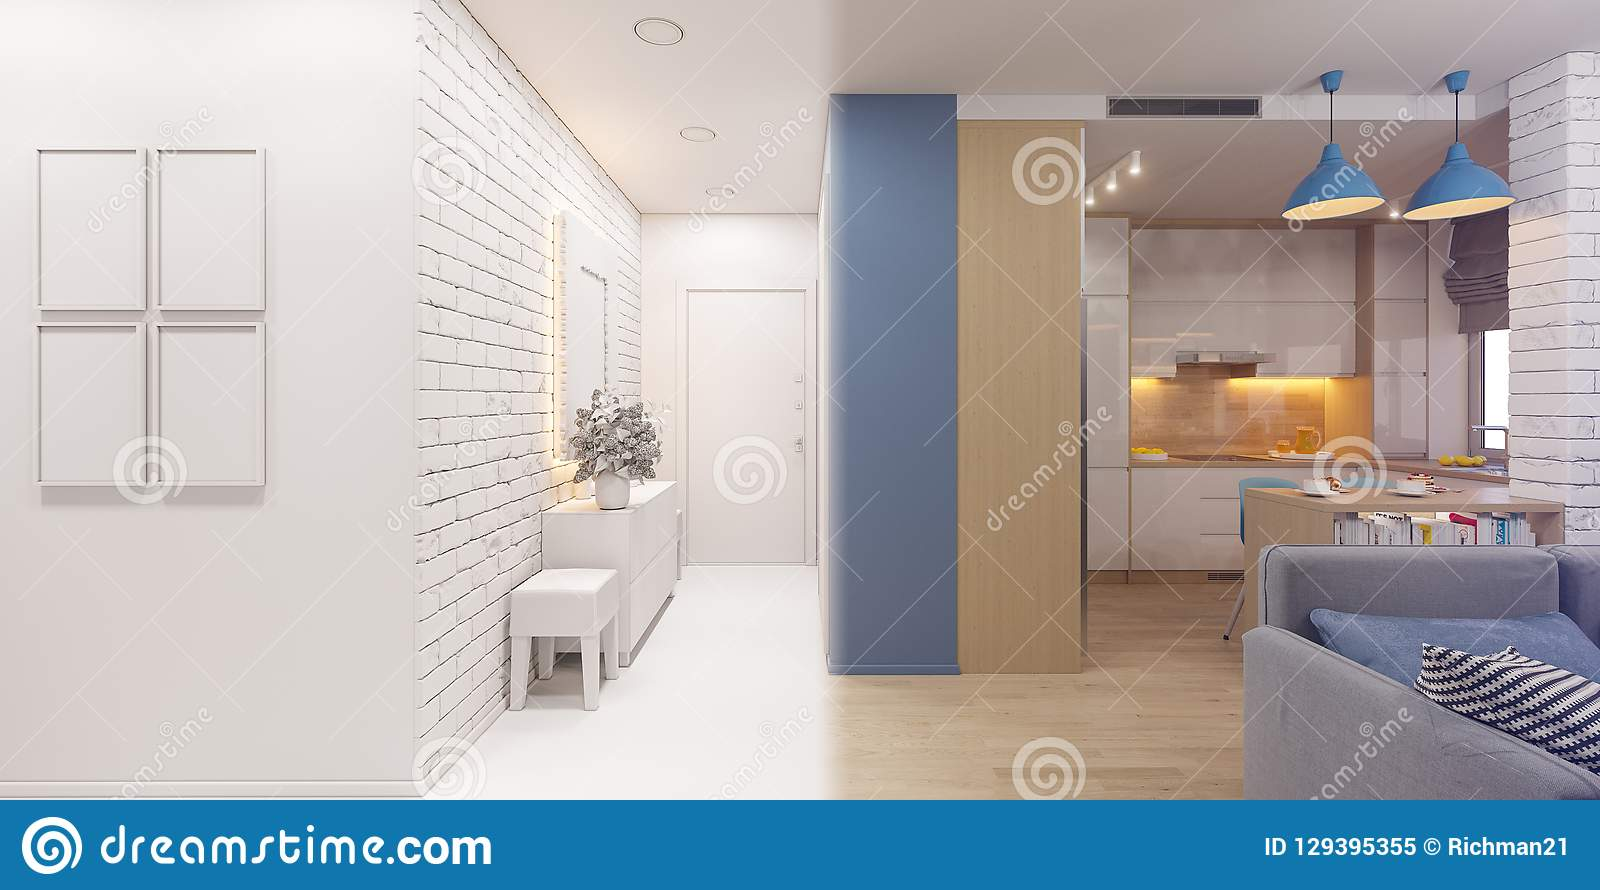 3d illustration of the interior design of an apartment in Scandi